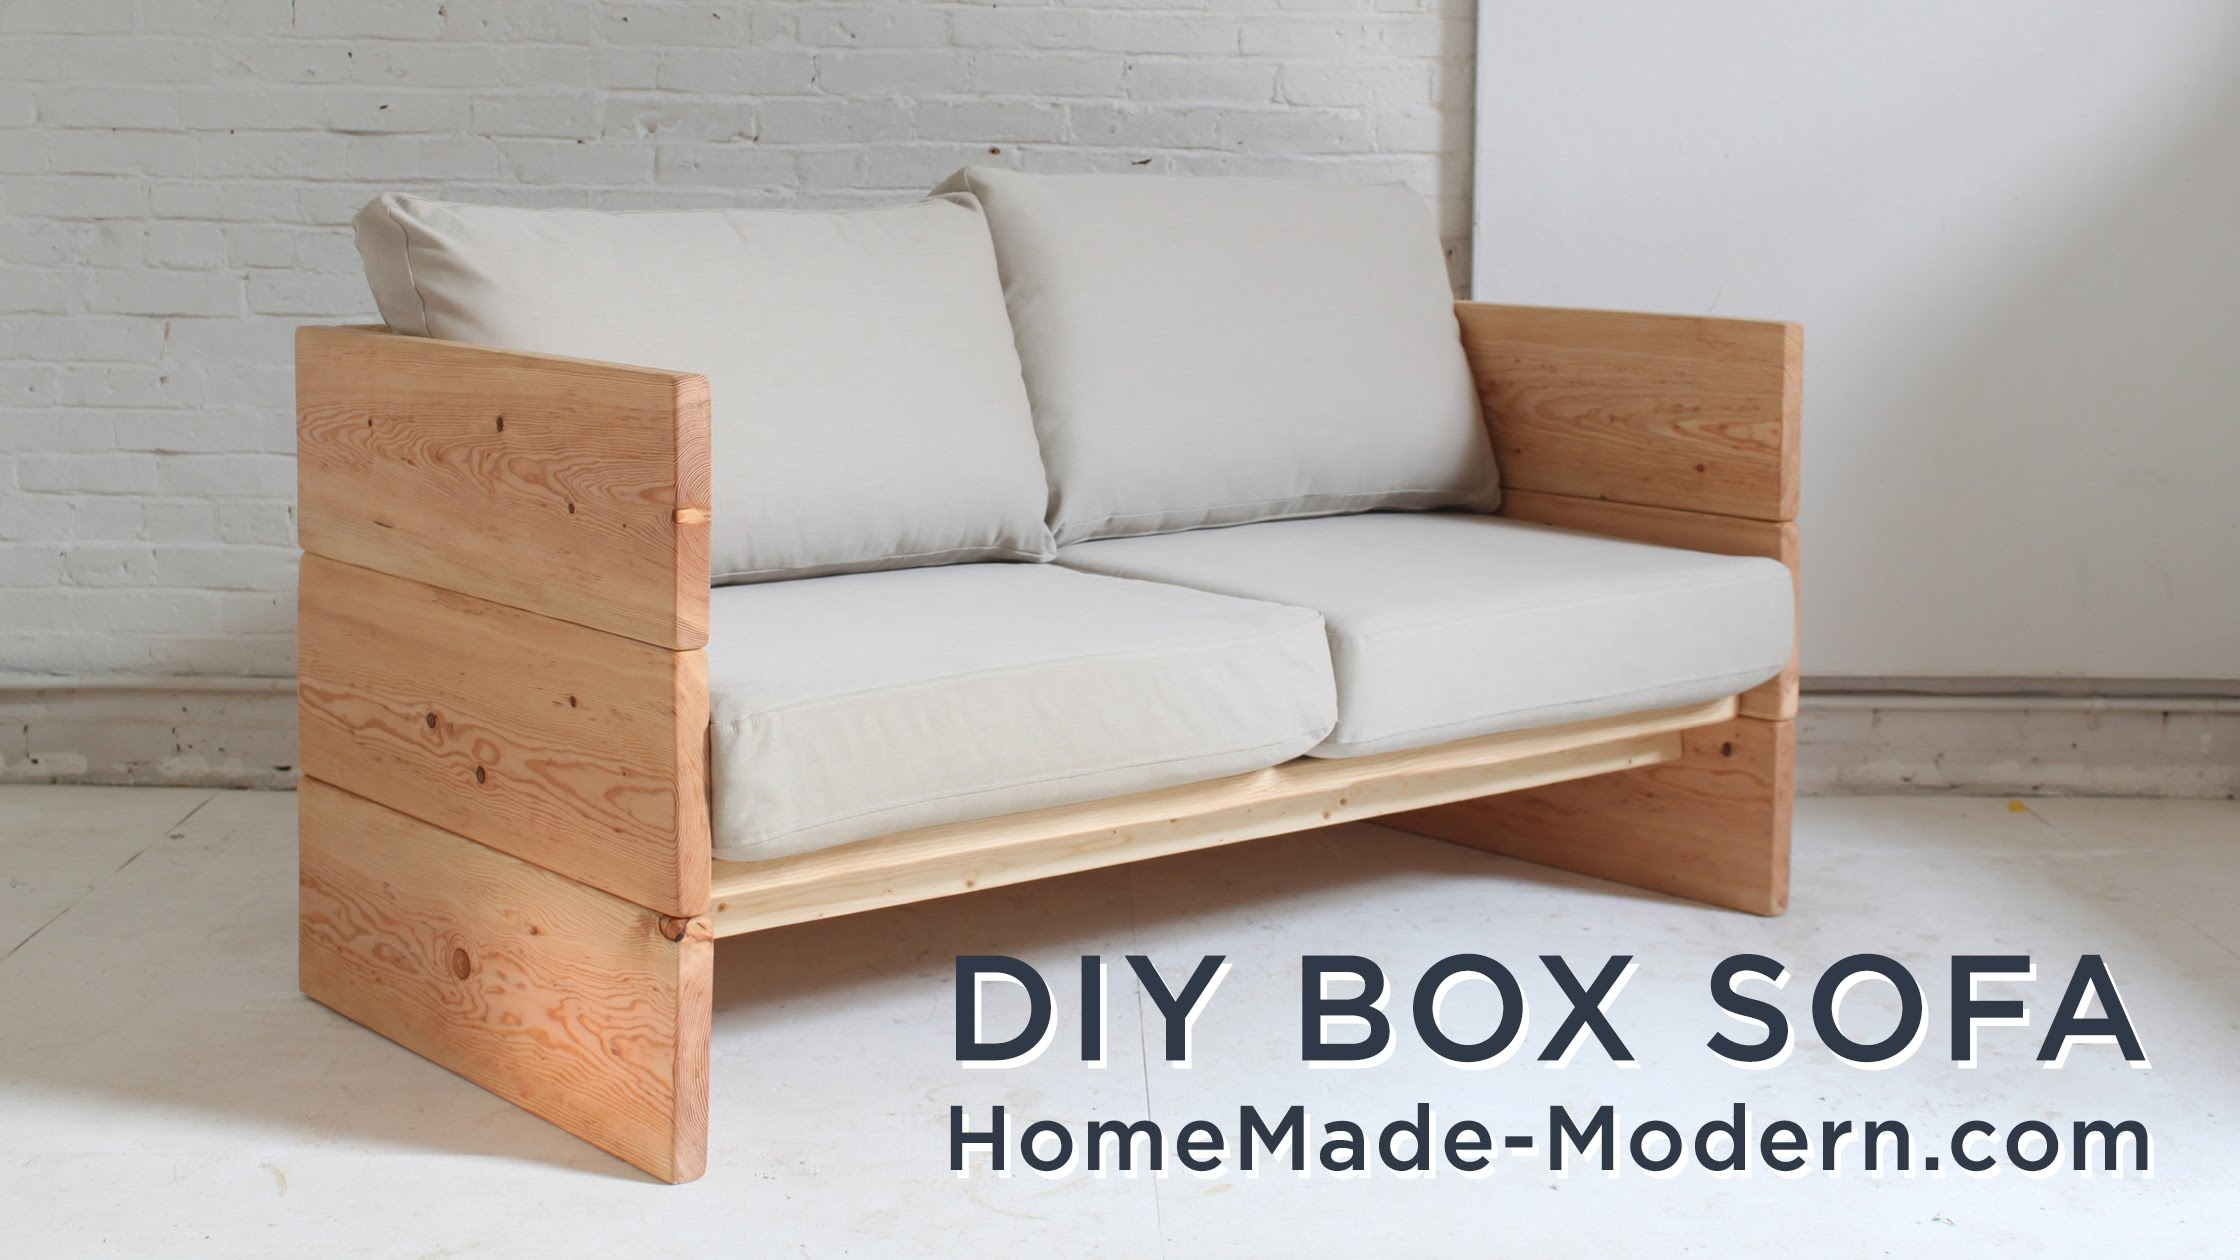 Diy Sofa Made Out Of 2x10s Furniture Fun Pinterest Diy Sofa Throughout Diy Sectional Sofa Frame Plans (Image 11 of 15)